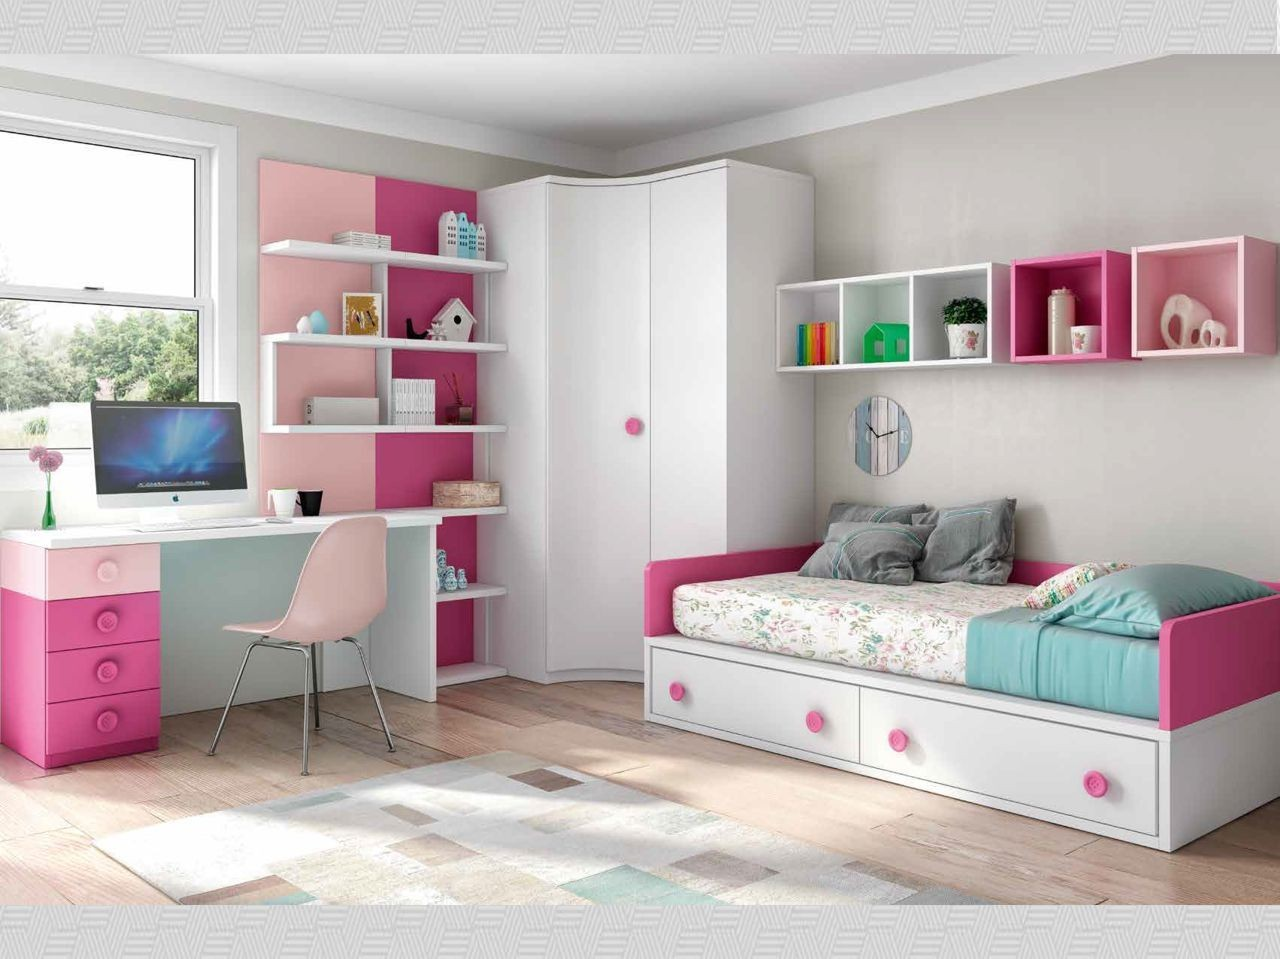 habitaci n juvenil blanco fucsia y rosa con tirador bot n del modelo formas f163 de glicerio. Black Bedroom Furniture Sets. Home Design Ideas